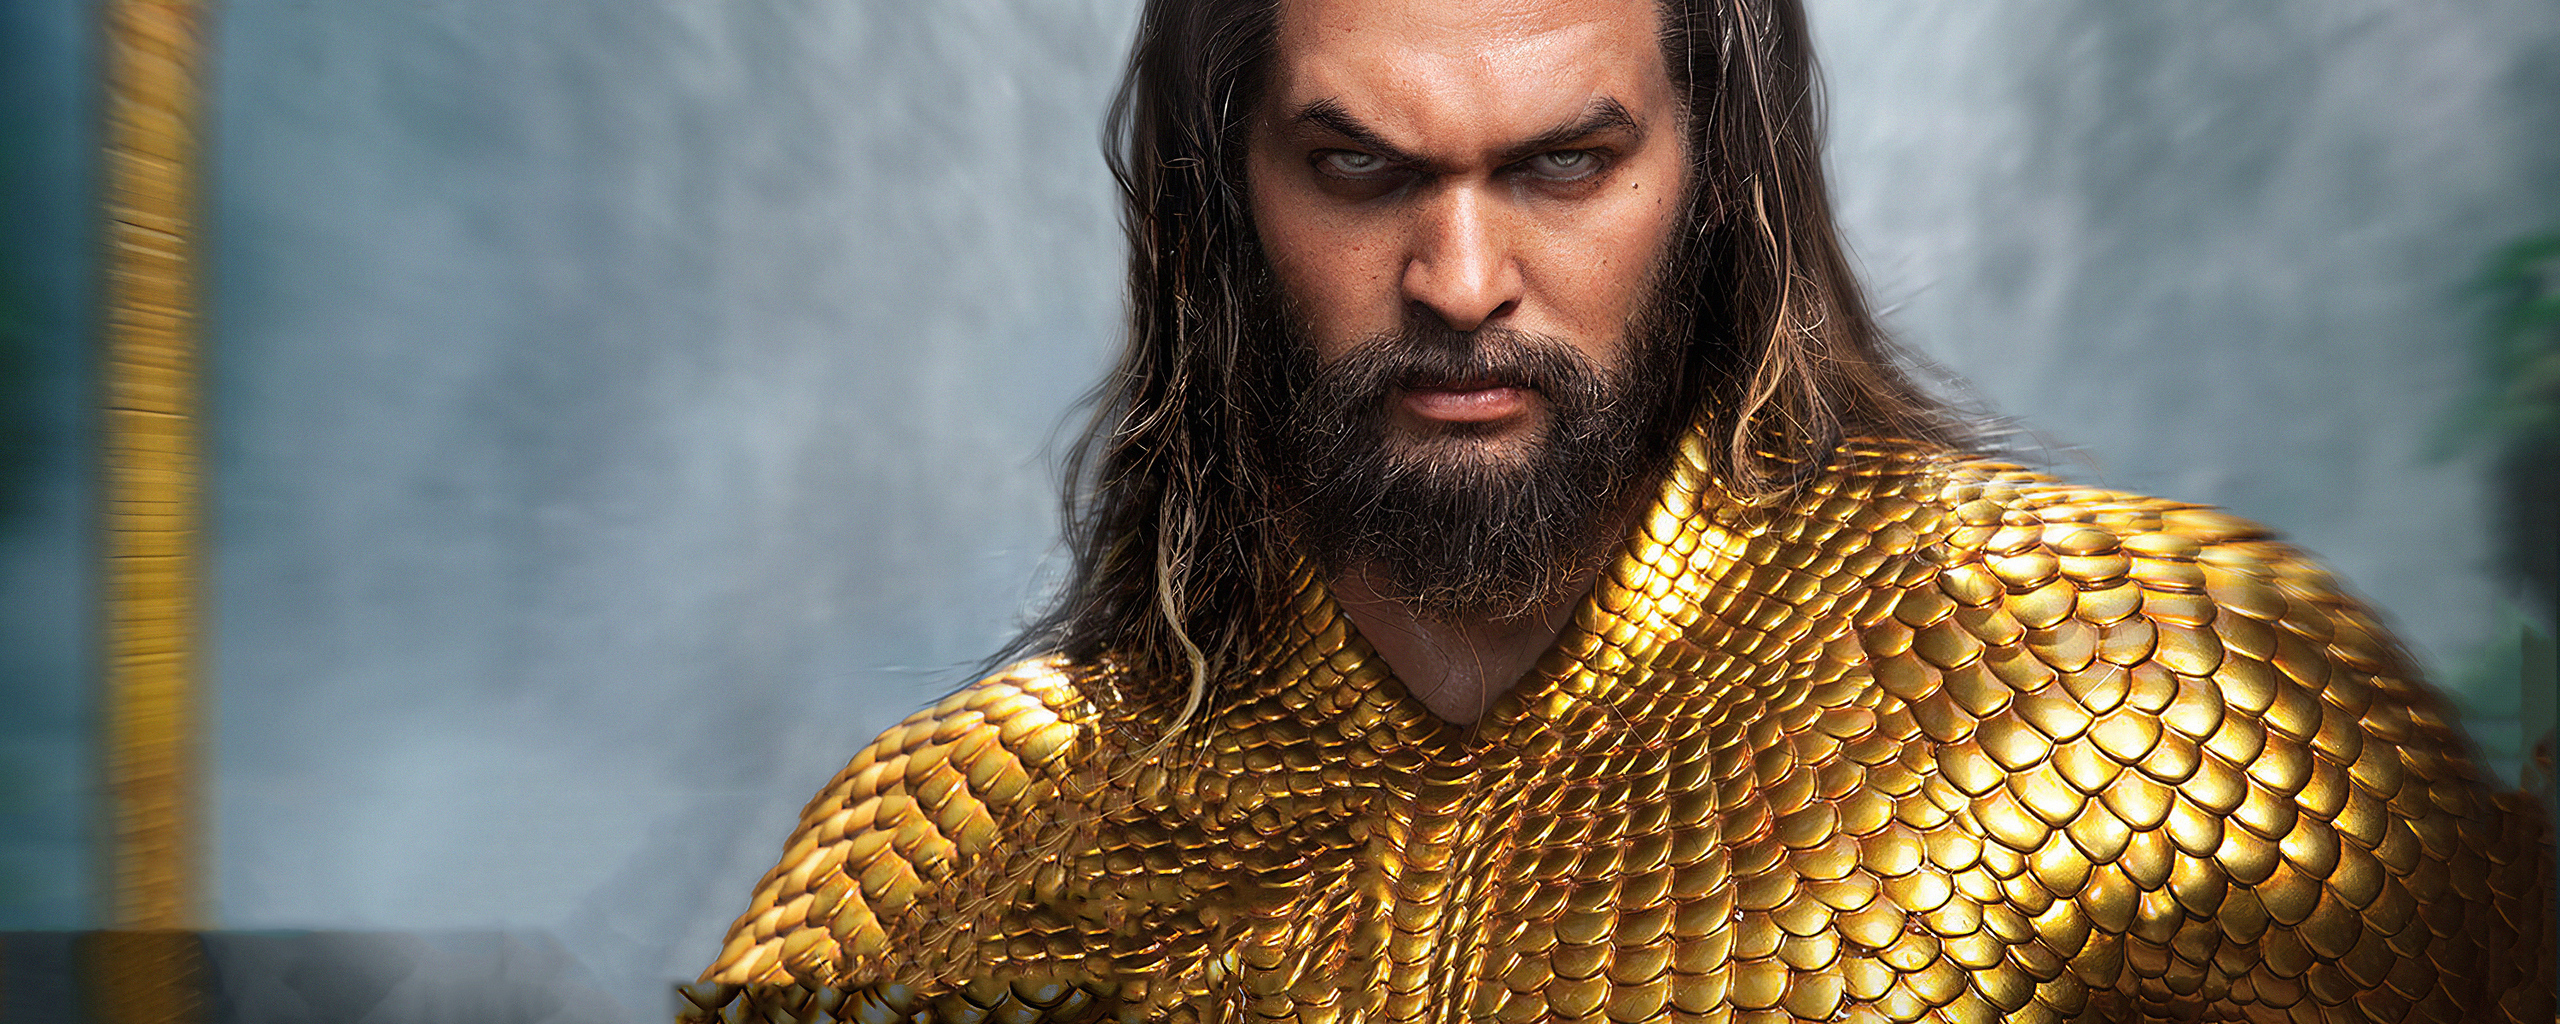 aquaman-new-4k-2020-mm.jpg